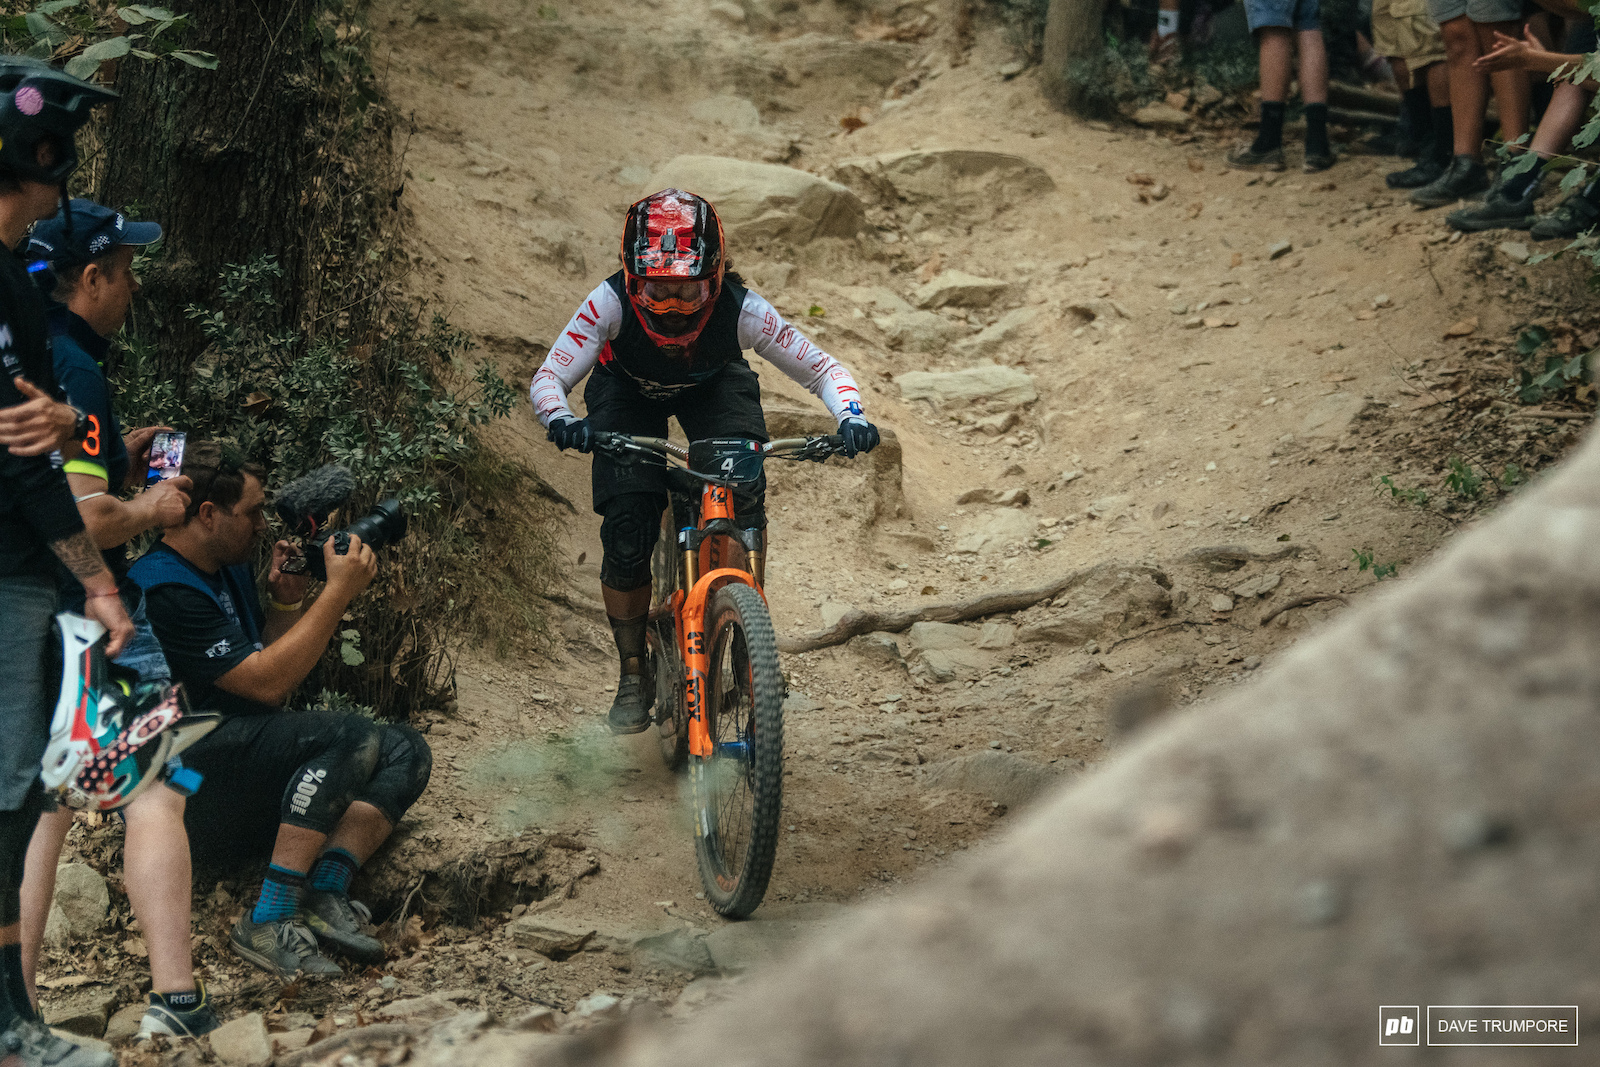 Domination in Finale for Morgane Charre